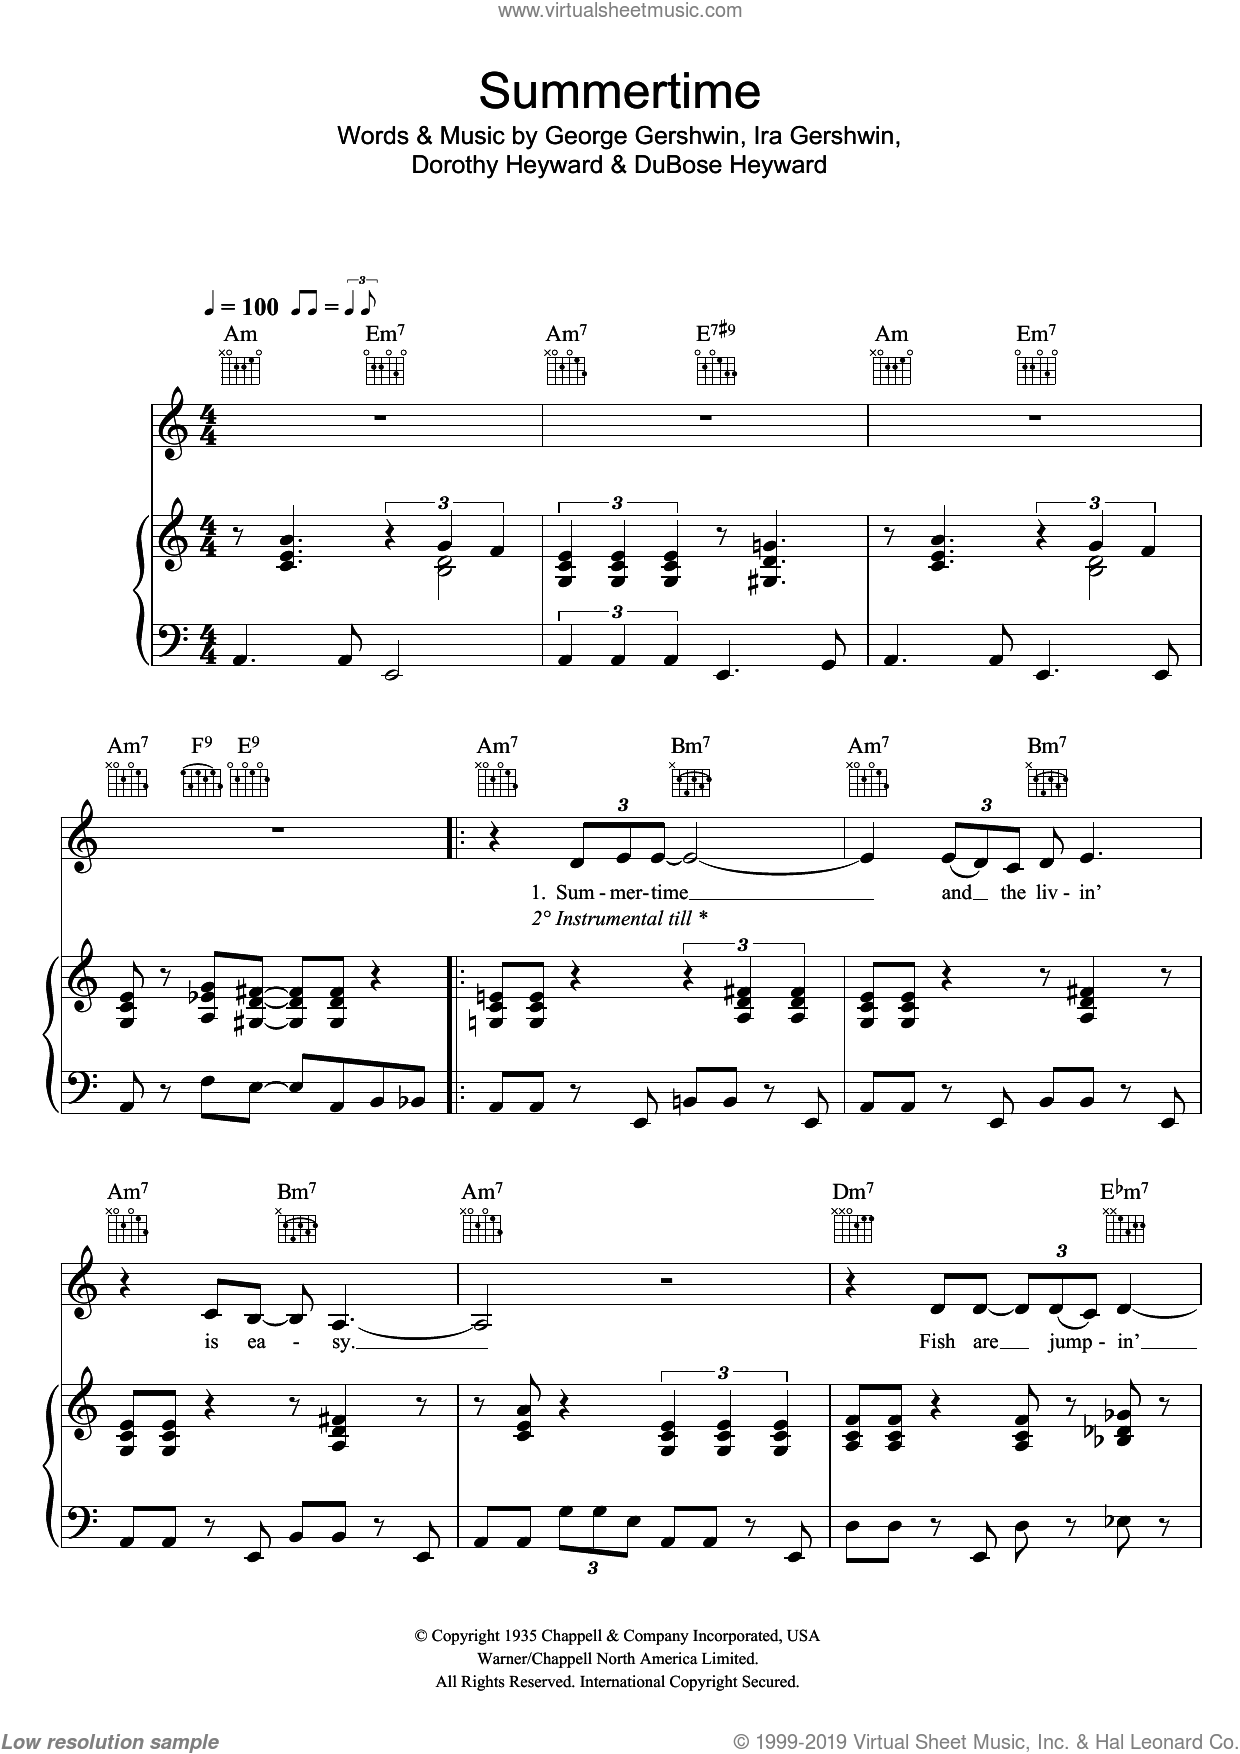 Summertime (from Porgy And Bess) sheet music for voice, piano or guitar by Eva Cassidy, Dorothy Heyward, DuBose Heyward, George Gershwin and Ira Gershwin, intermediate skill level